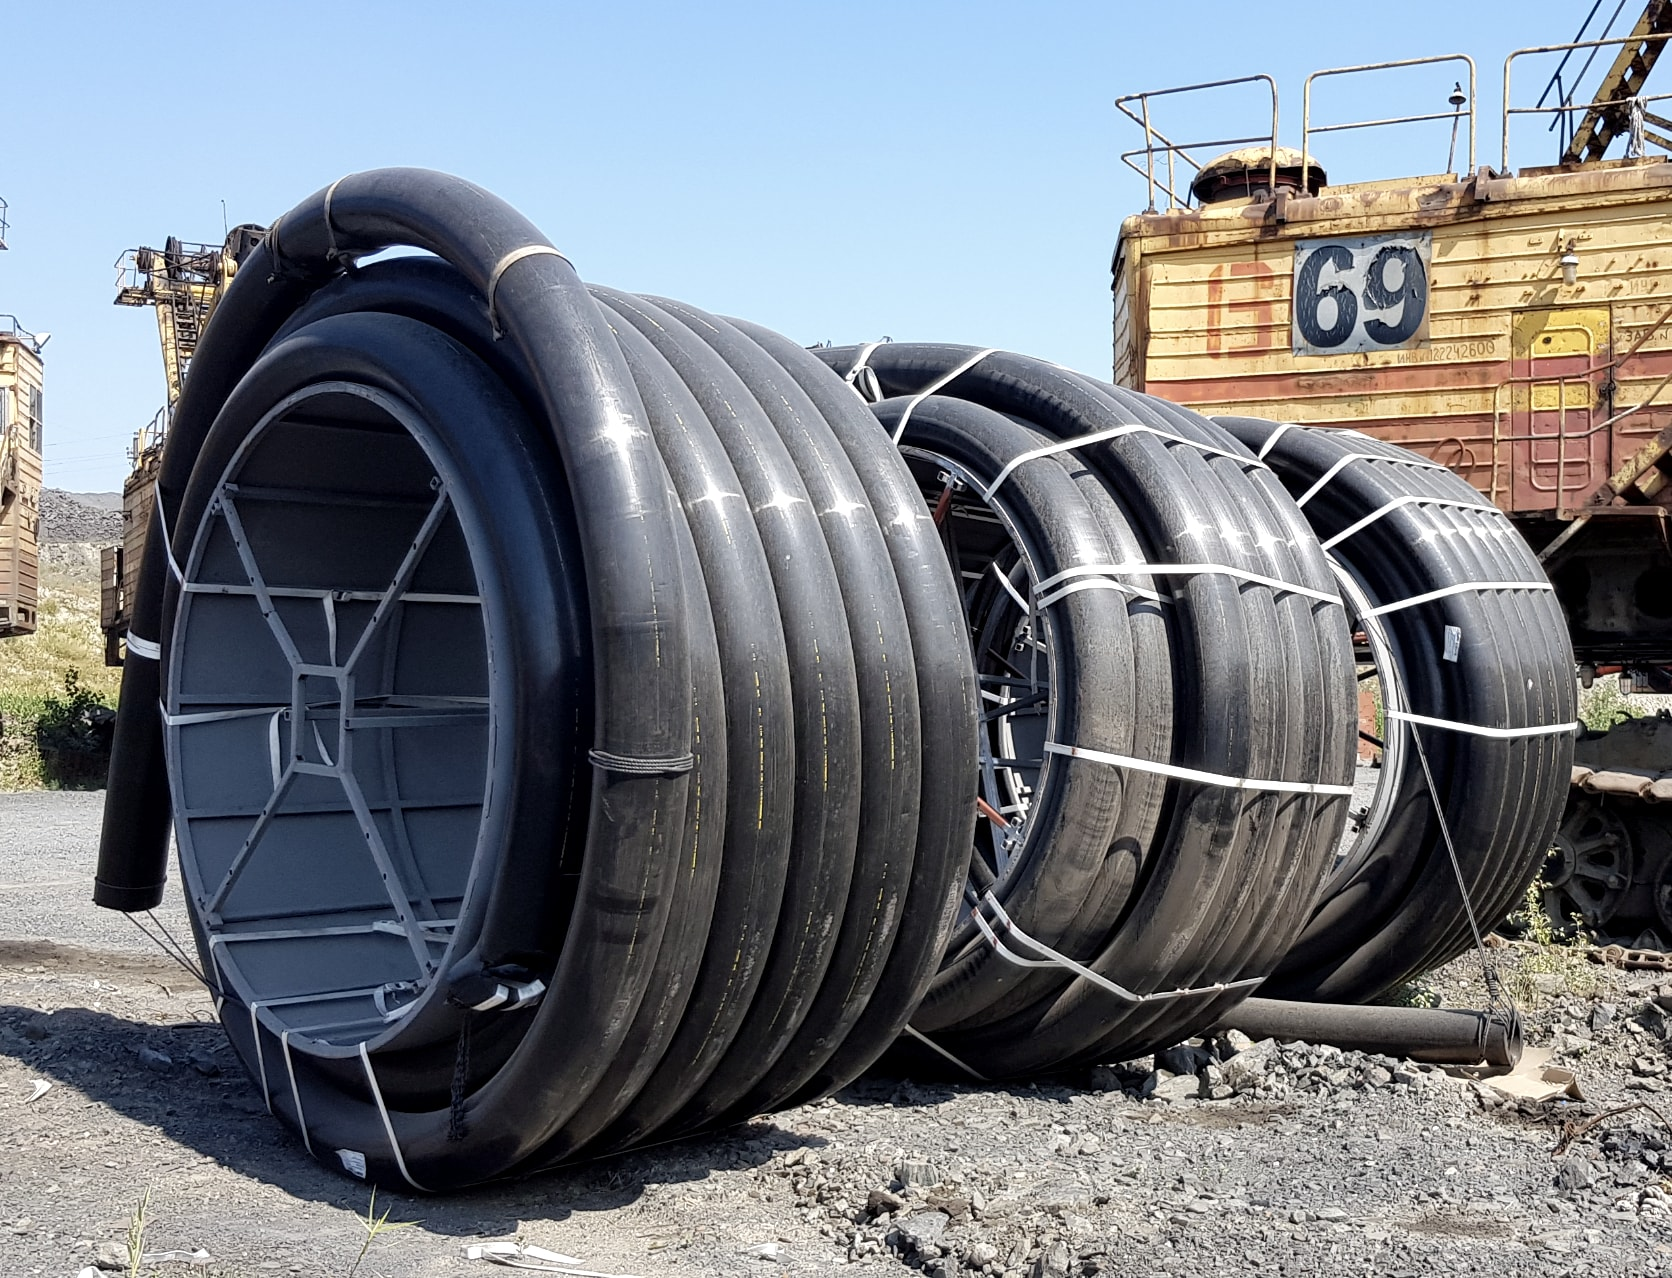 Coiled hydrometallurgy pipes